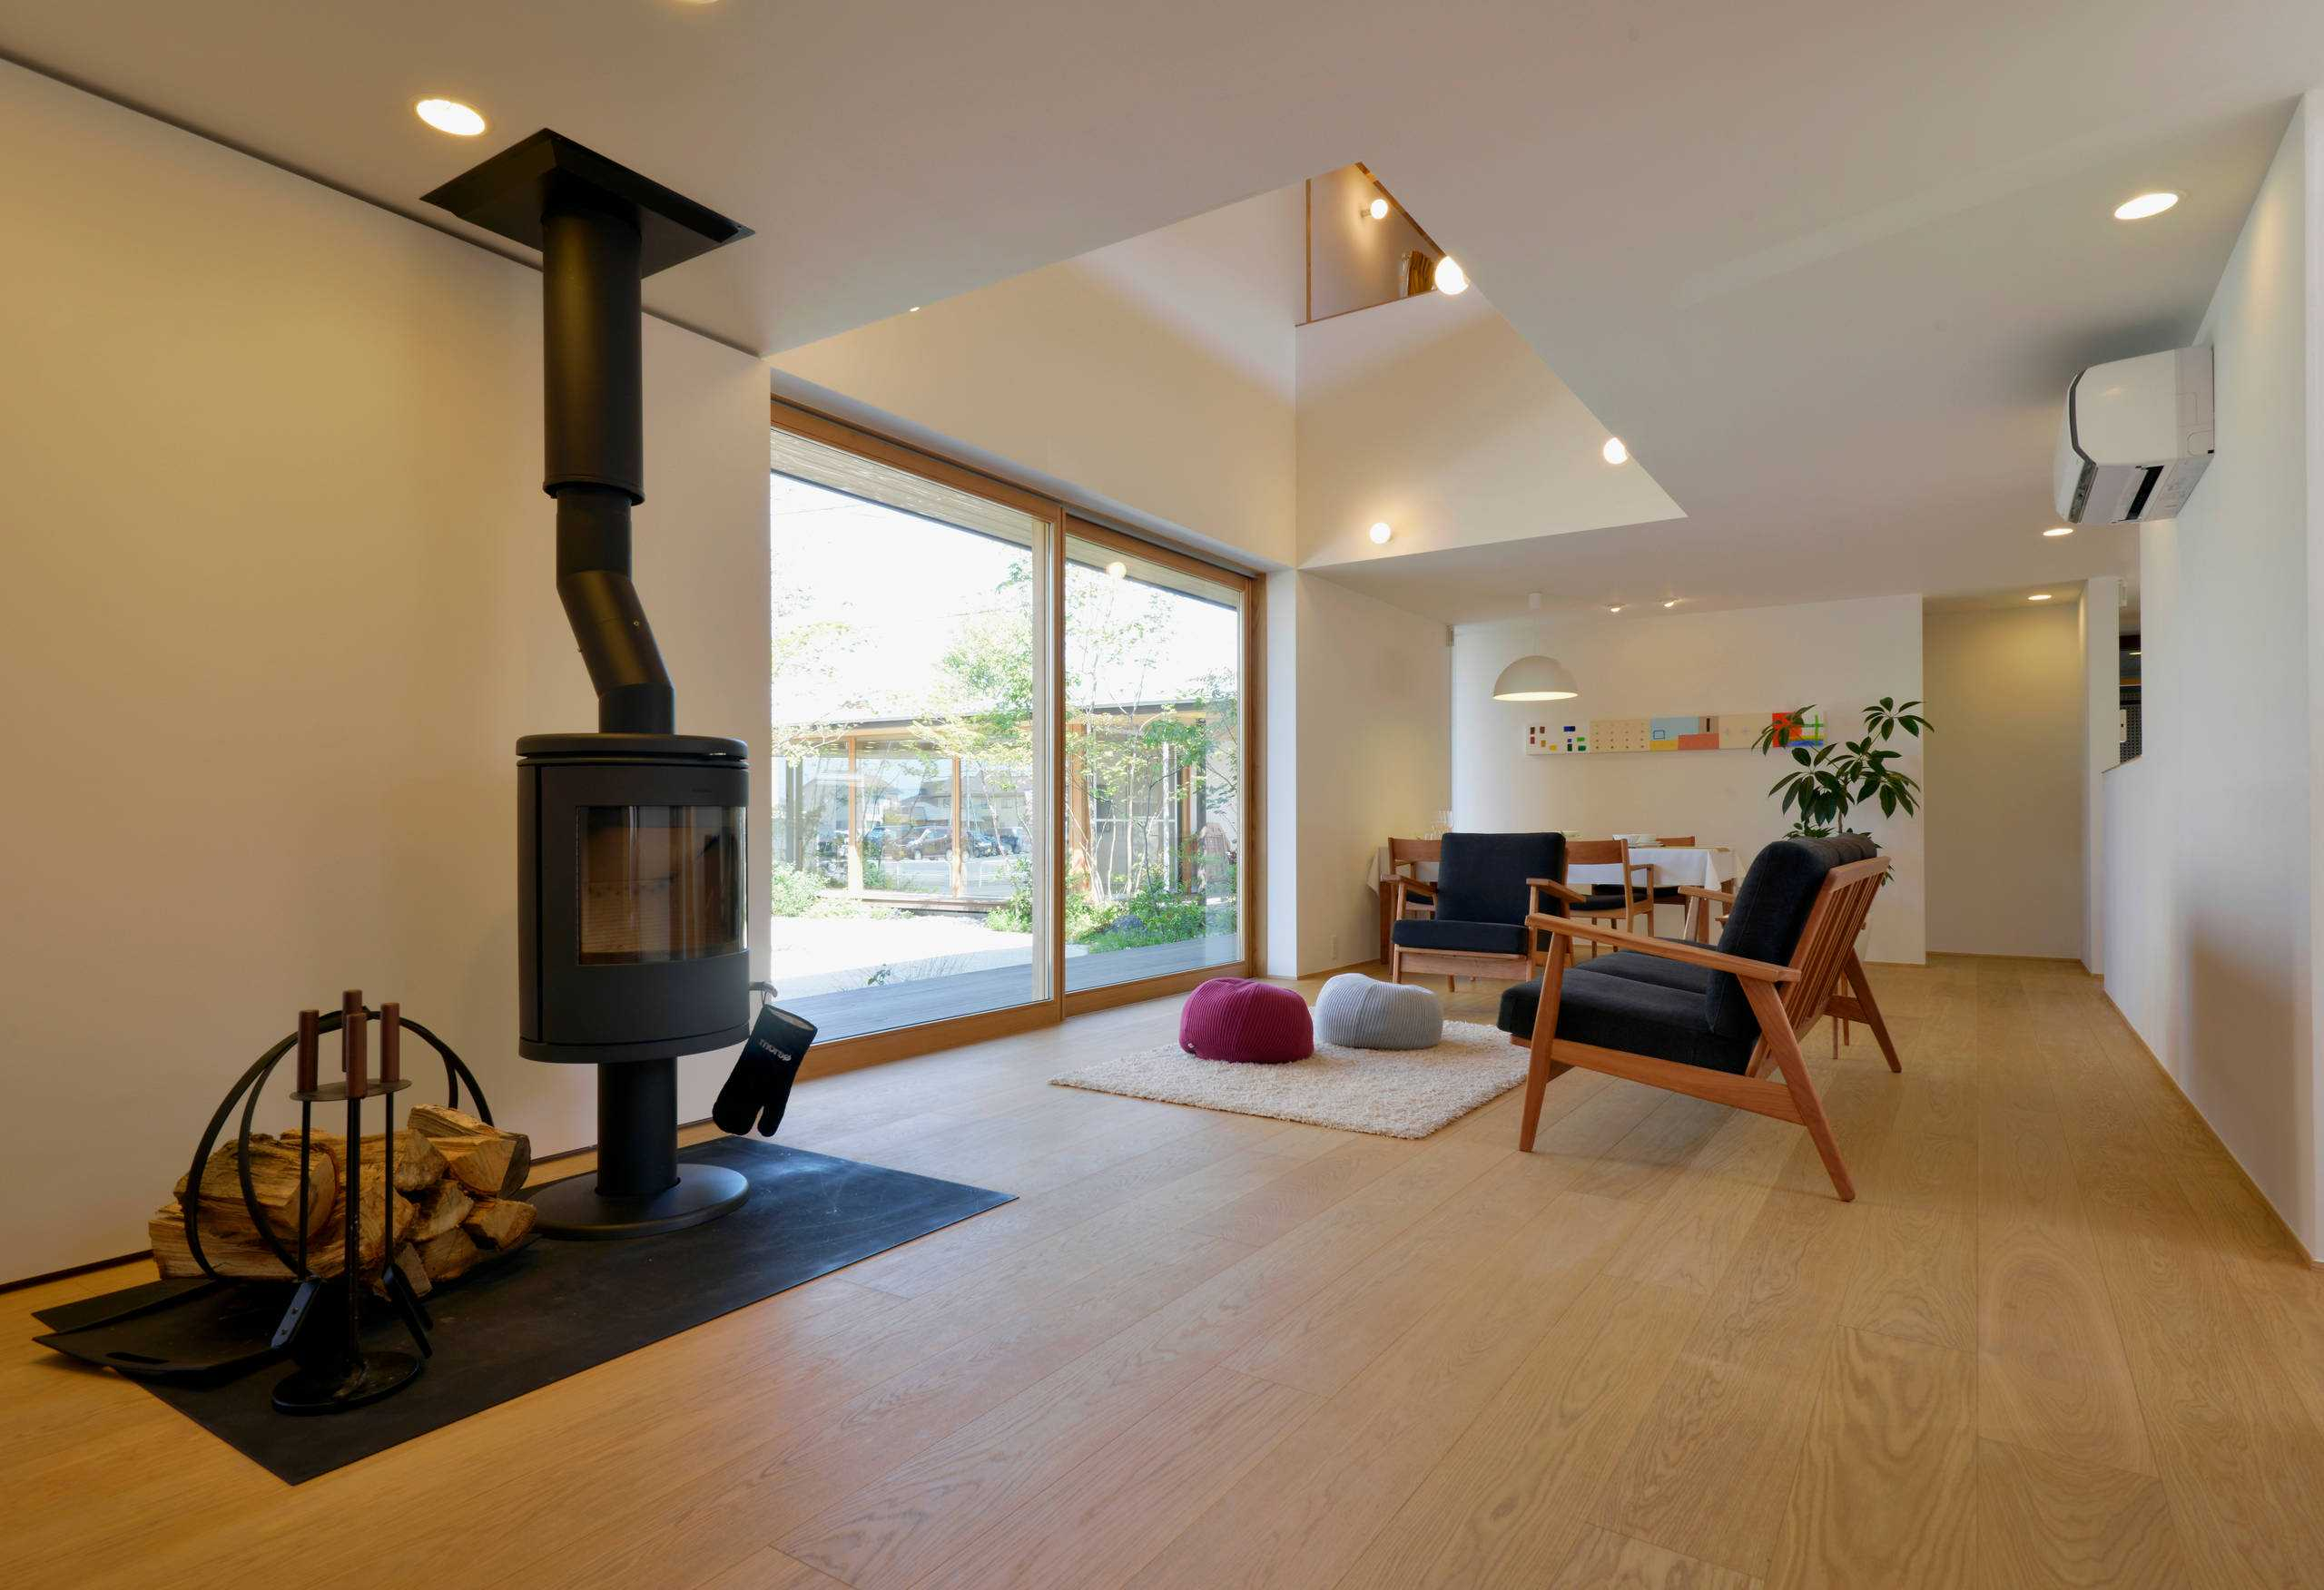 15 Beautiful Modern Living Room Designs Your Home ... on Living Room Style Ideas  id=27277